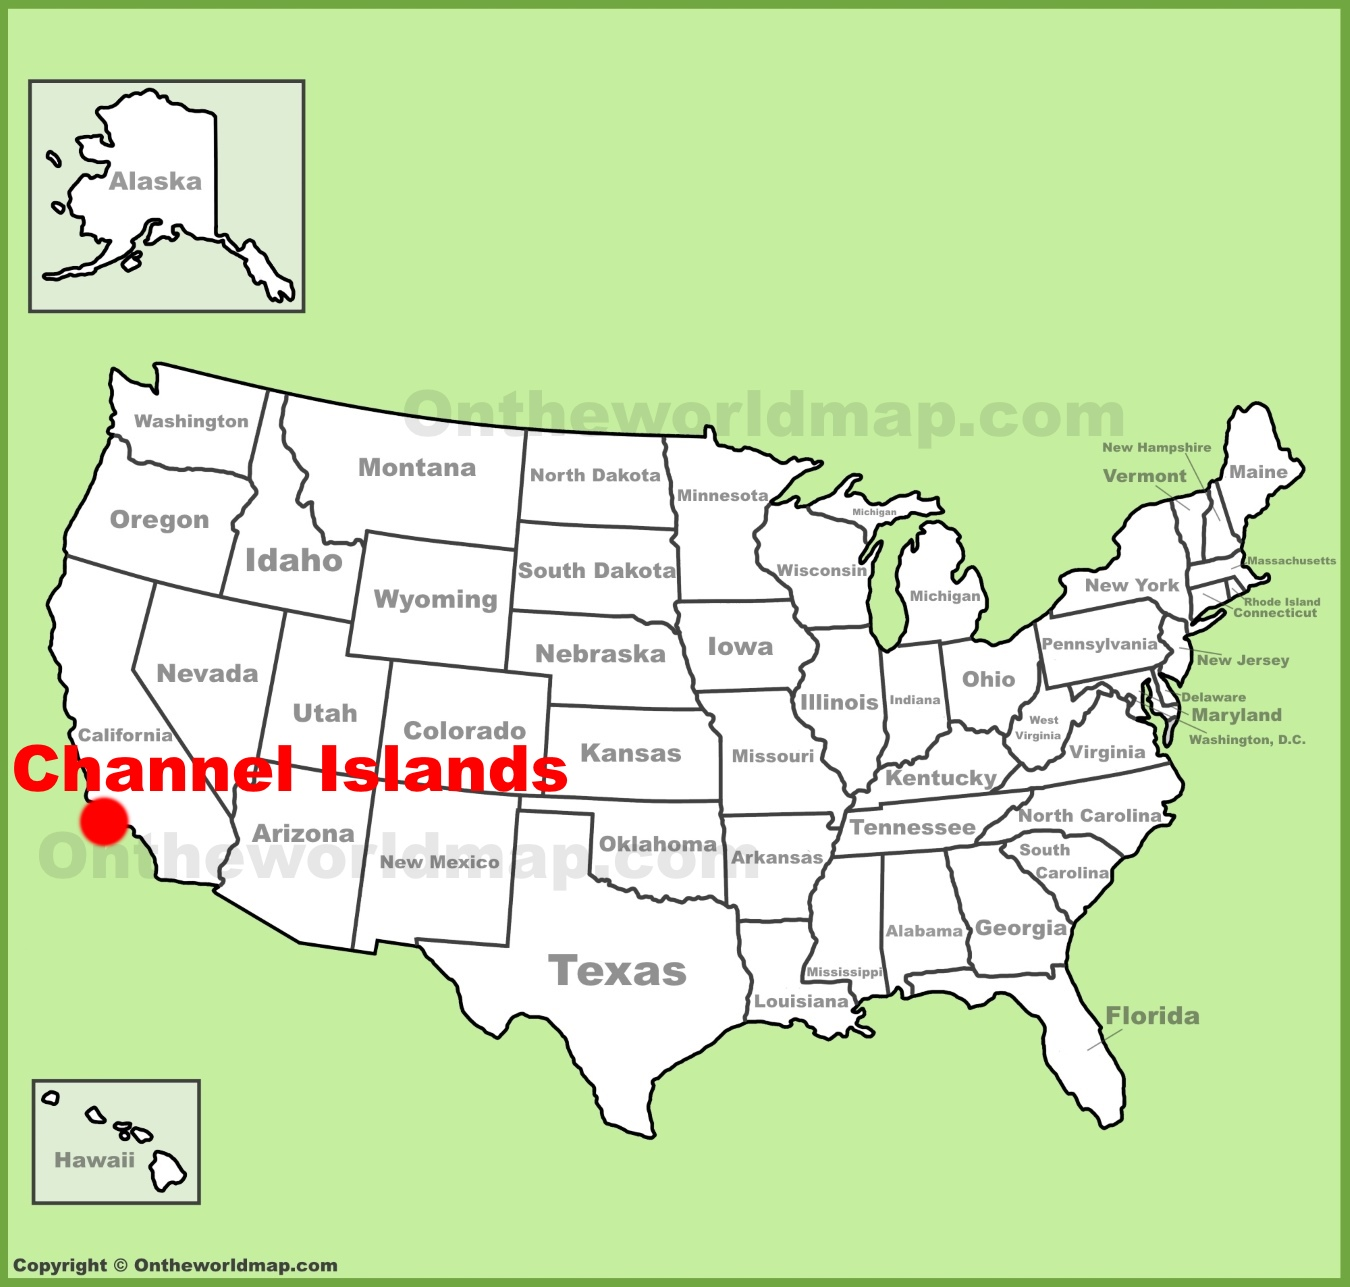 Channel Islands National Park location on the U.S. Map